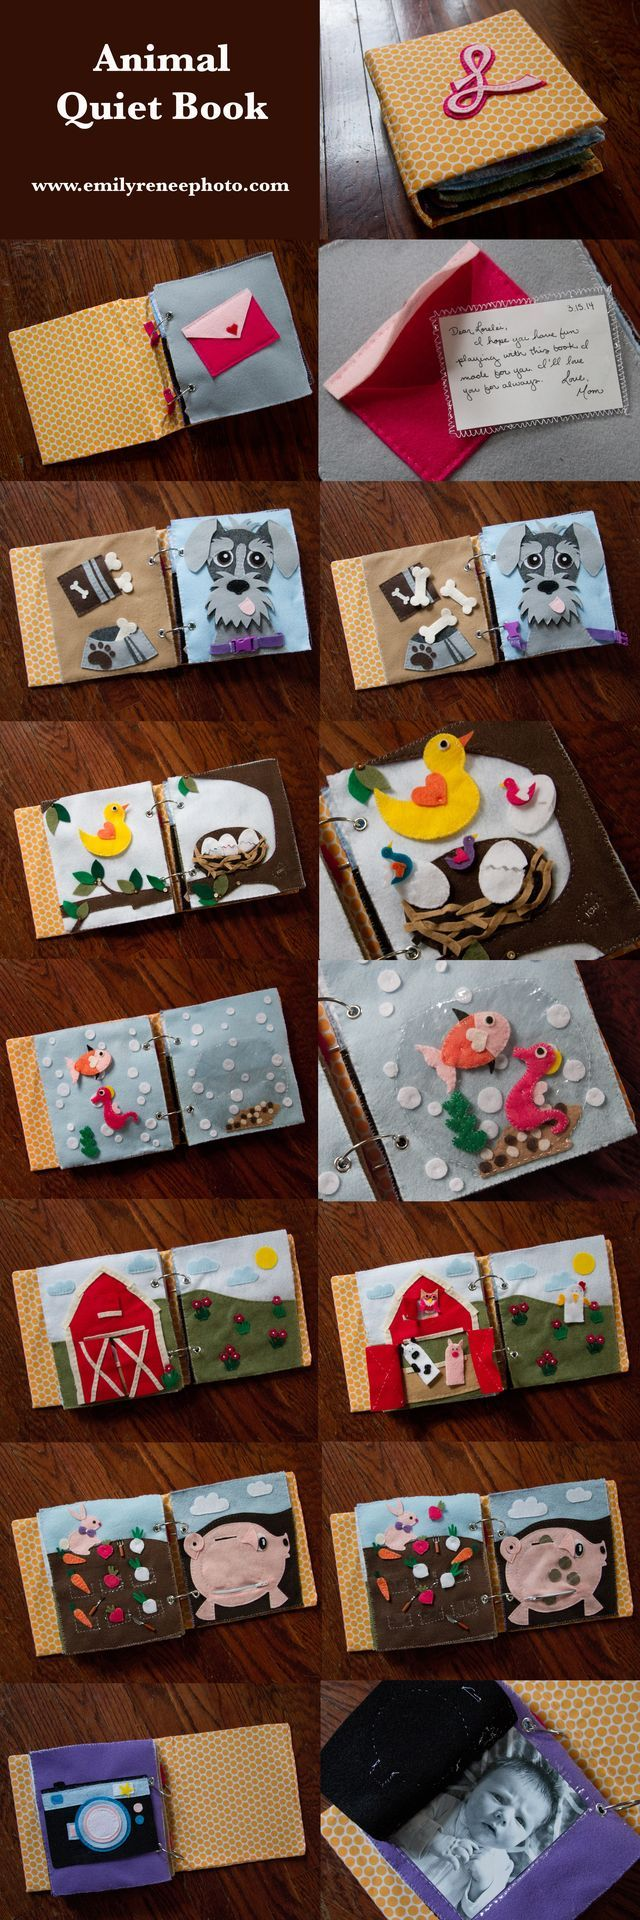 Love letter/envelope page. Bird and chicks in tree/nest. Farm animals. Camera with baby picture!